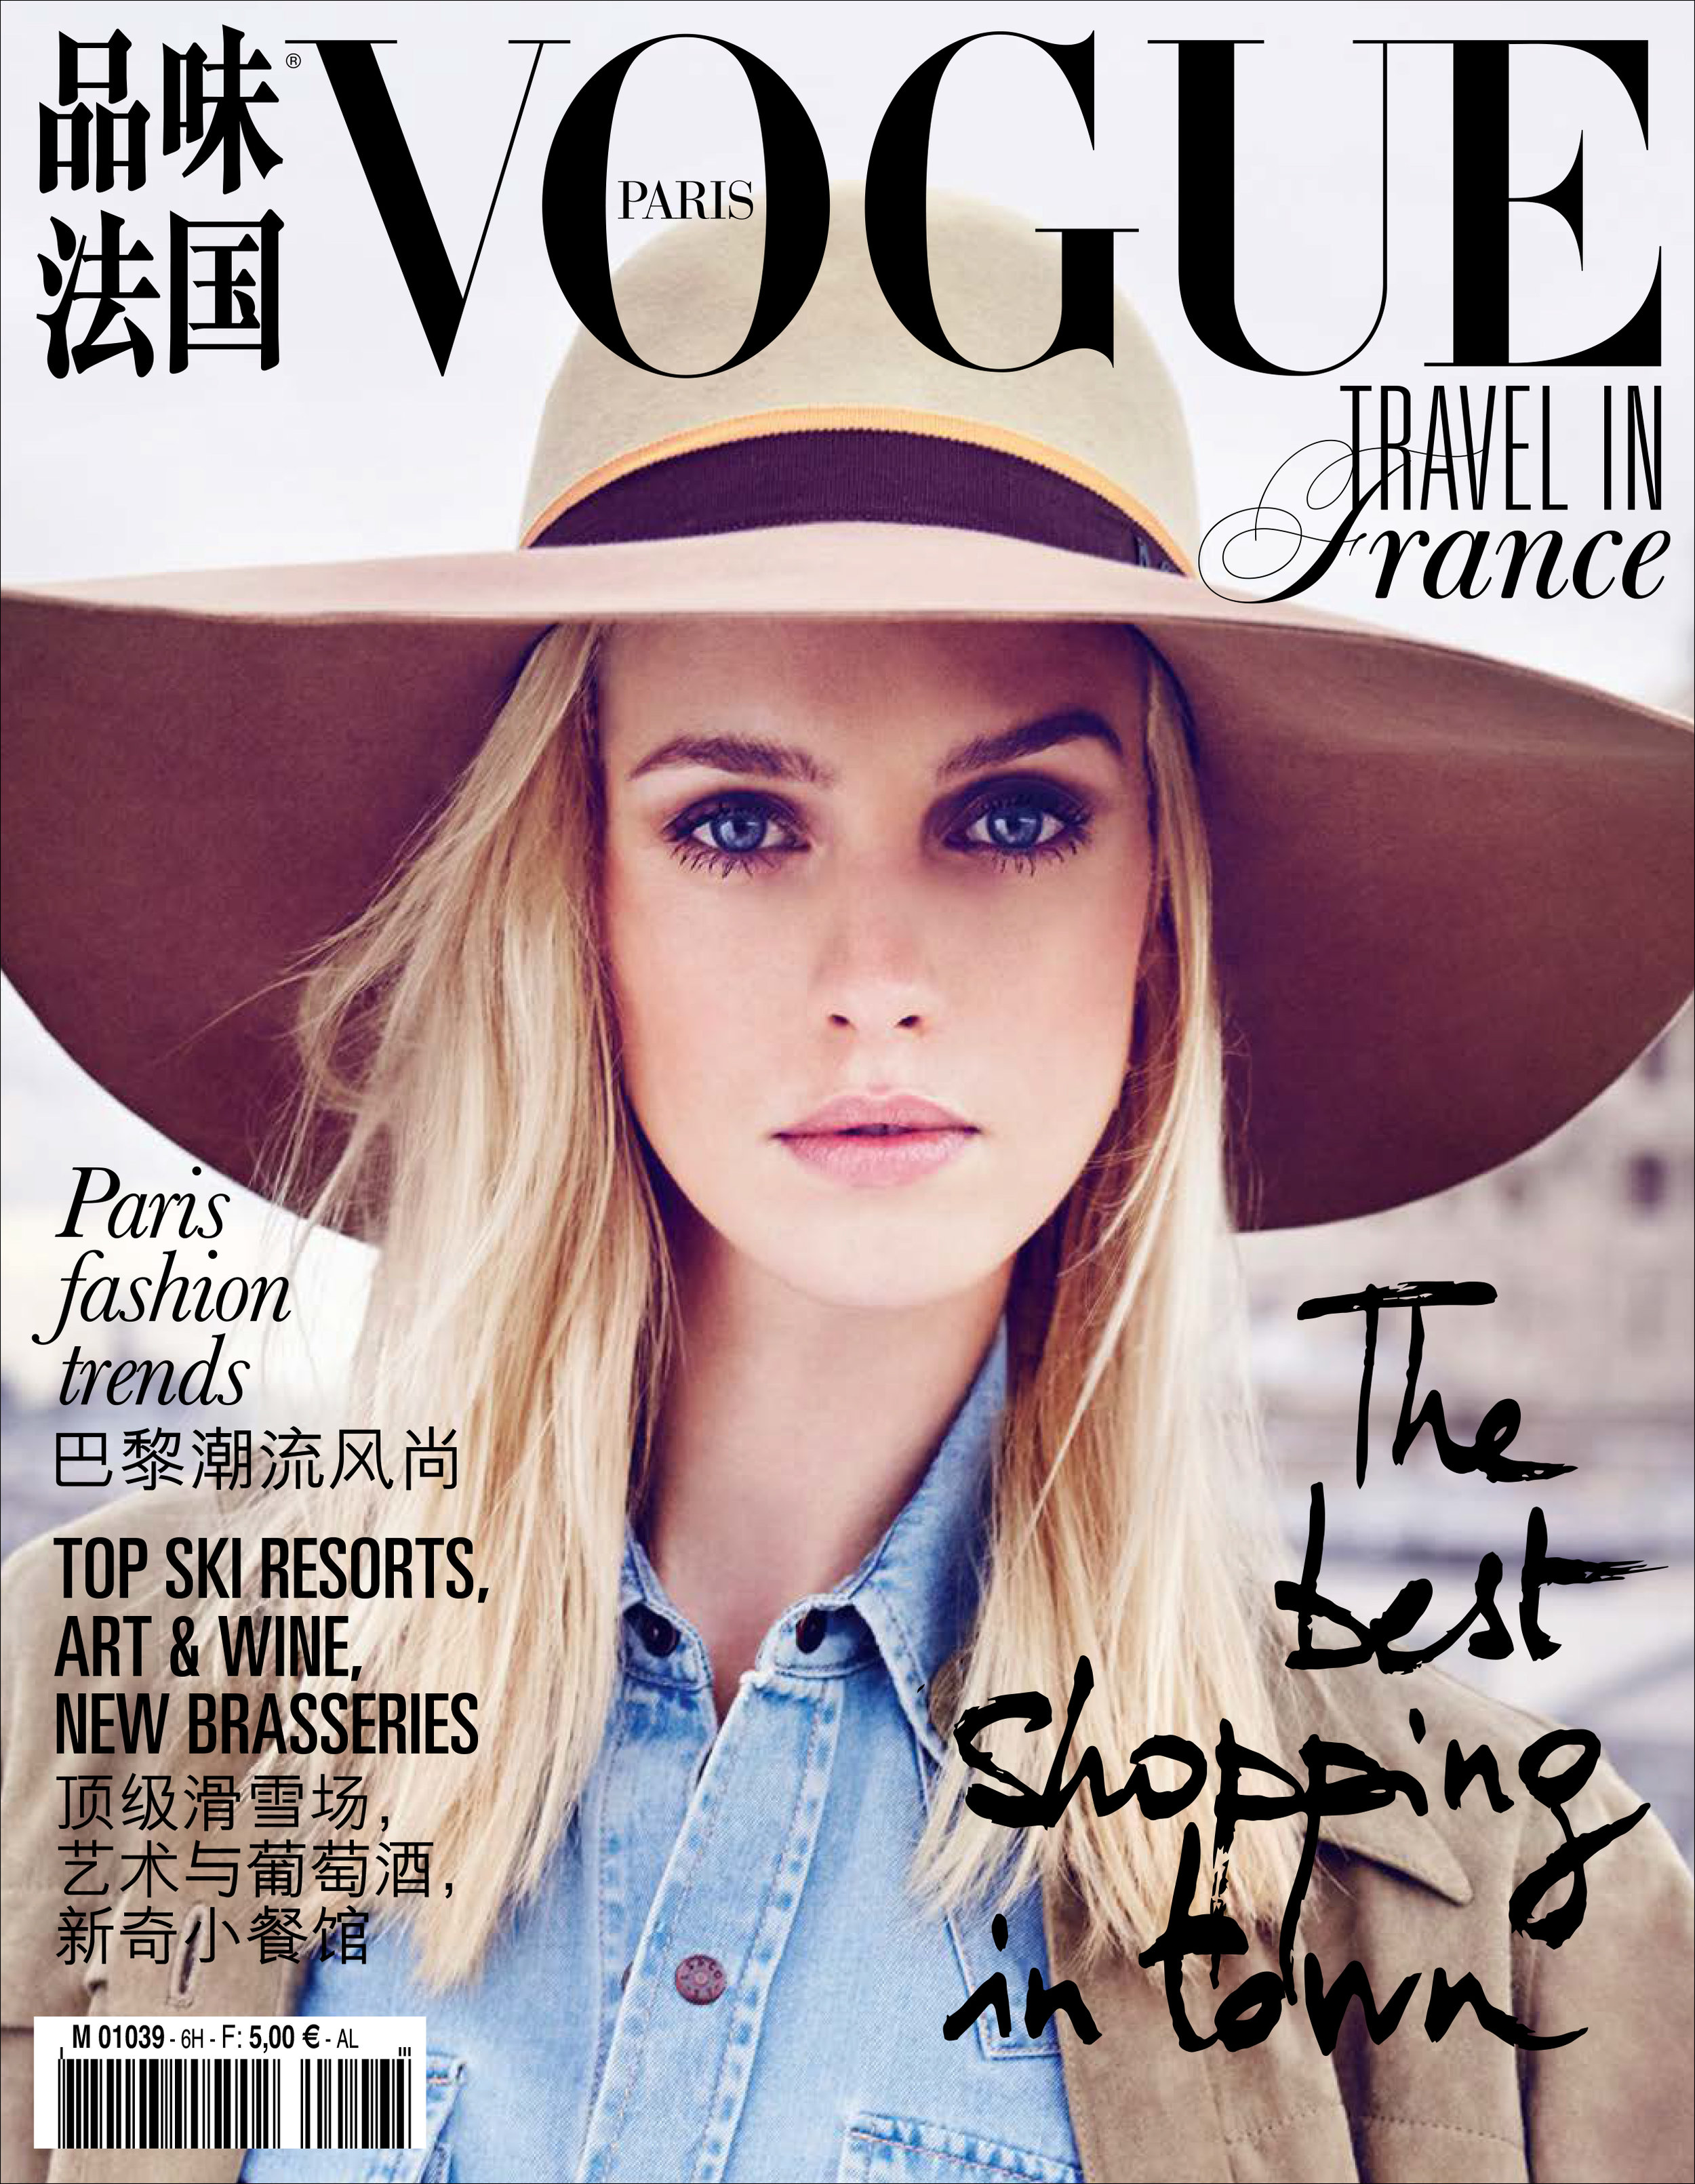 Vogue Travel in France - N°6 February 2015 Photographer - Martin Tyszka Model - Julia Frauche